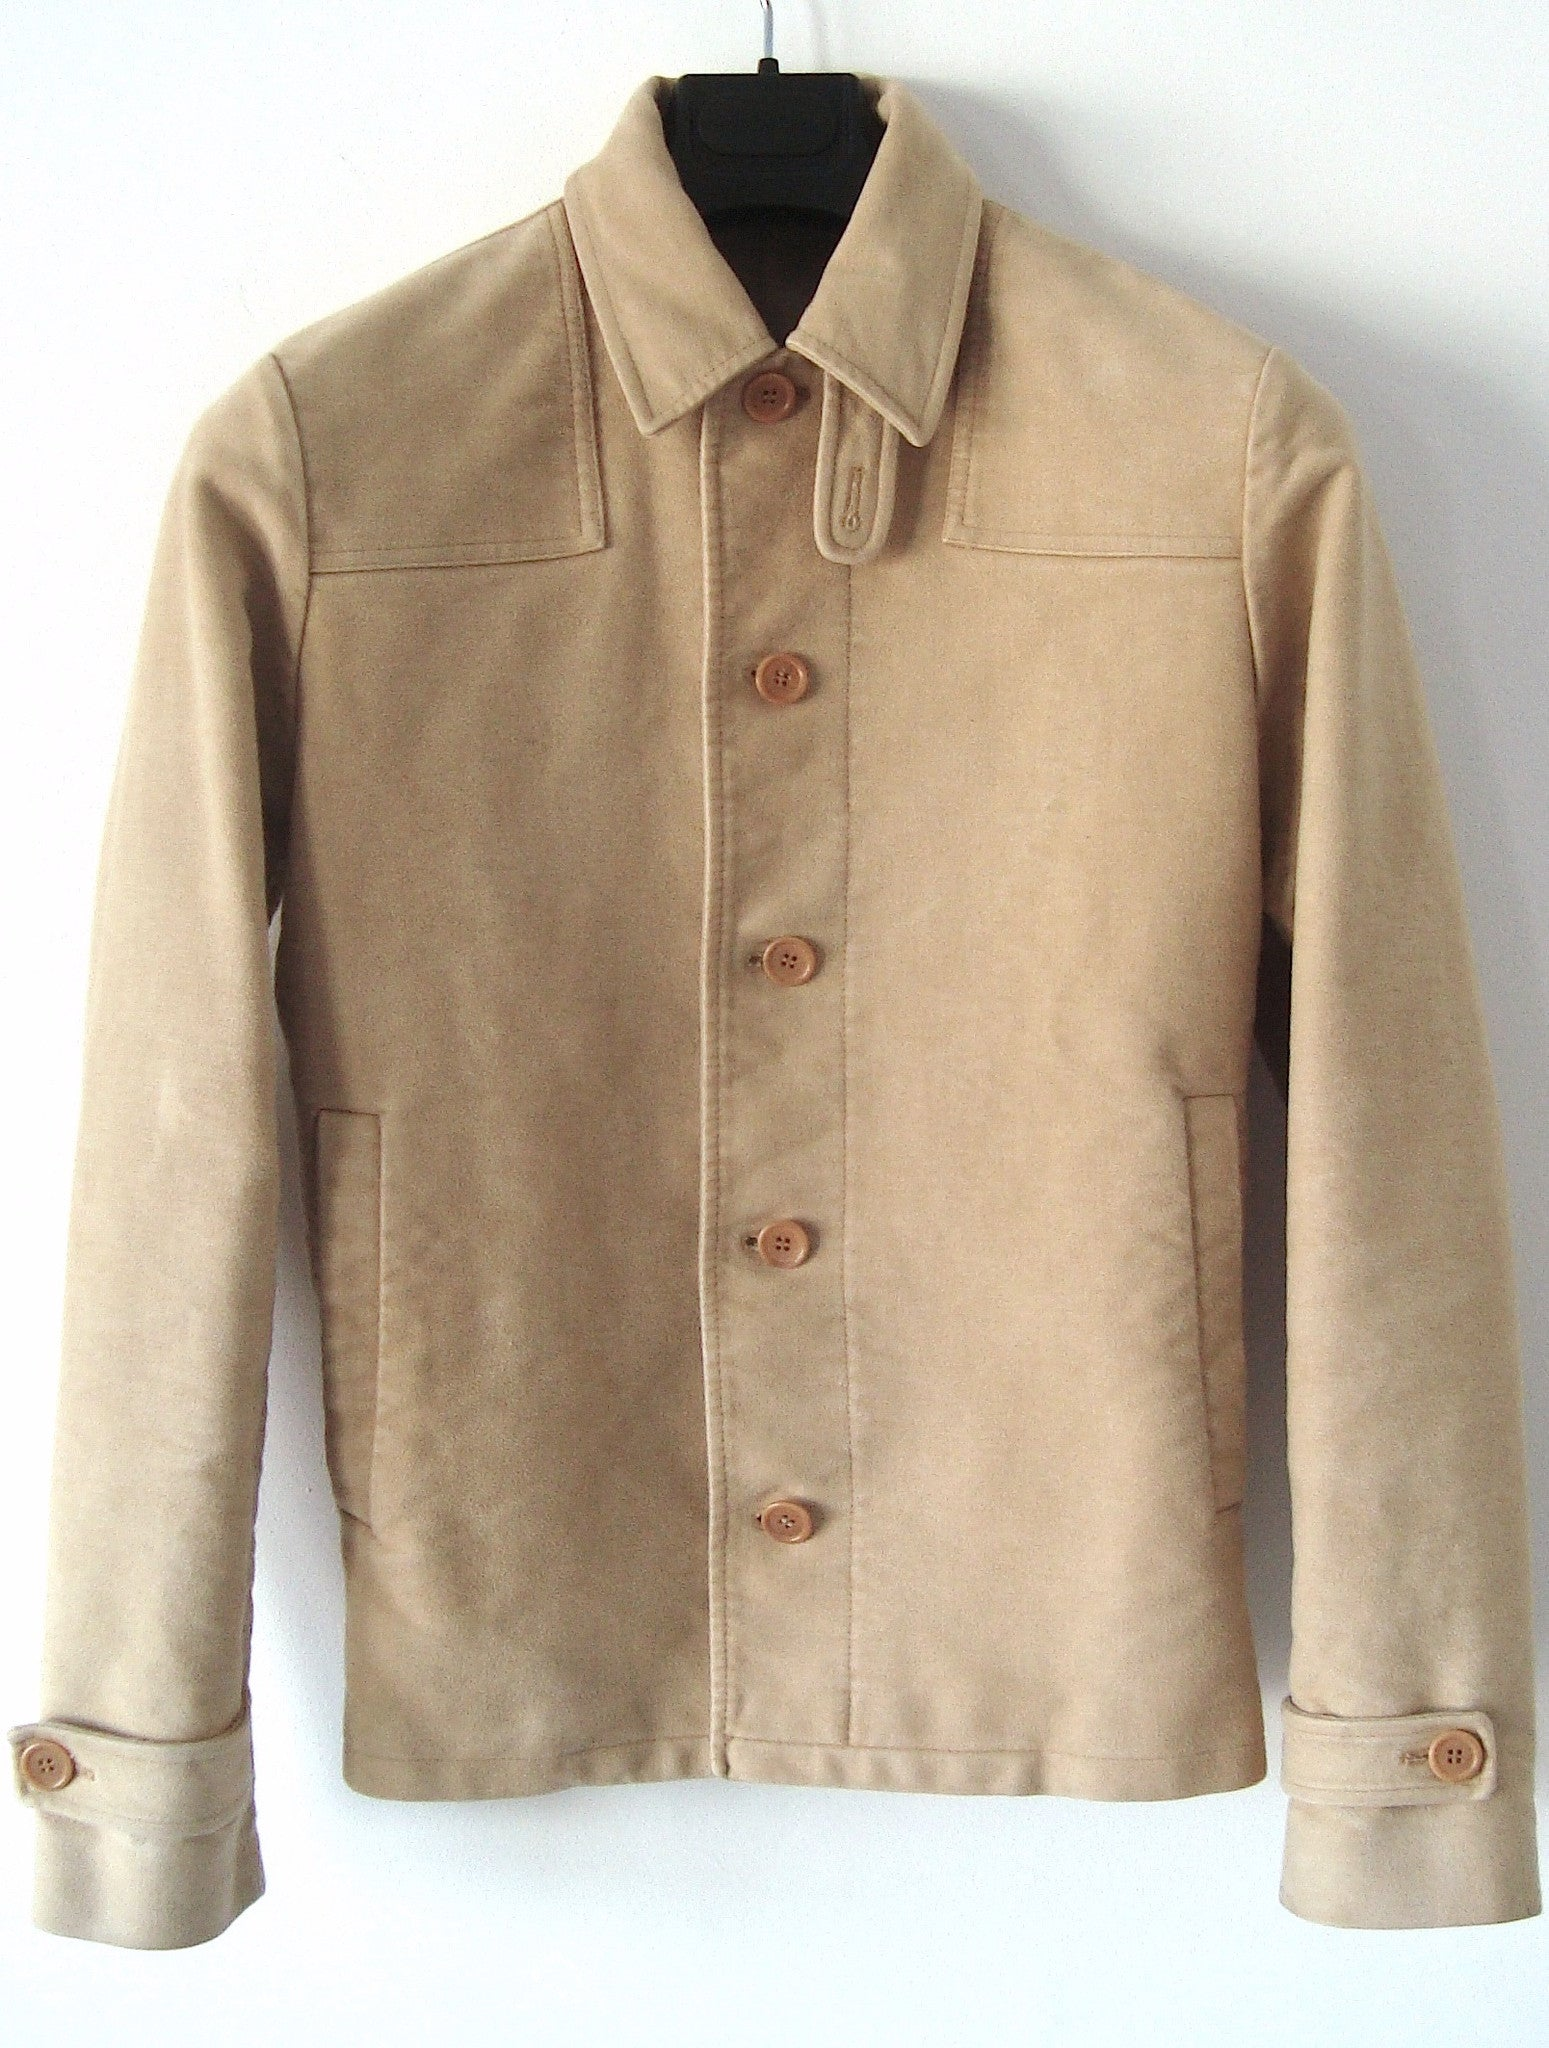 1996 Moleskin Cotton Donkey Jacket